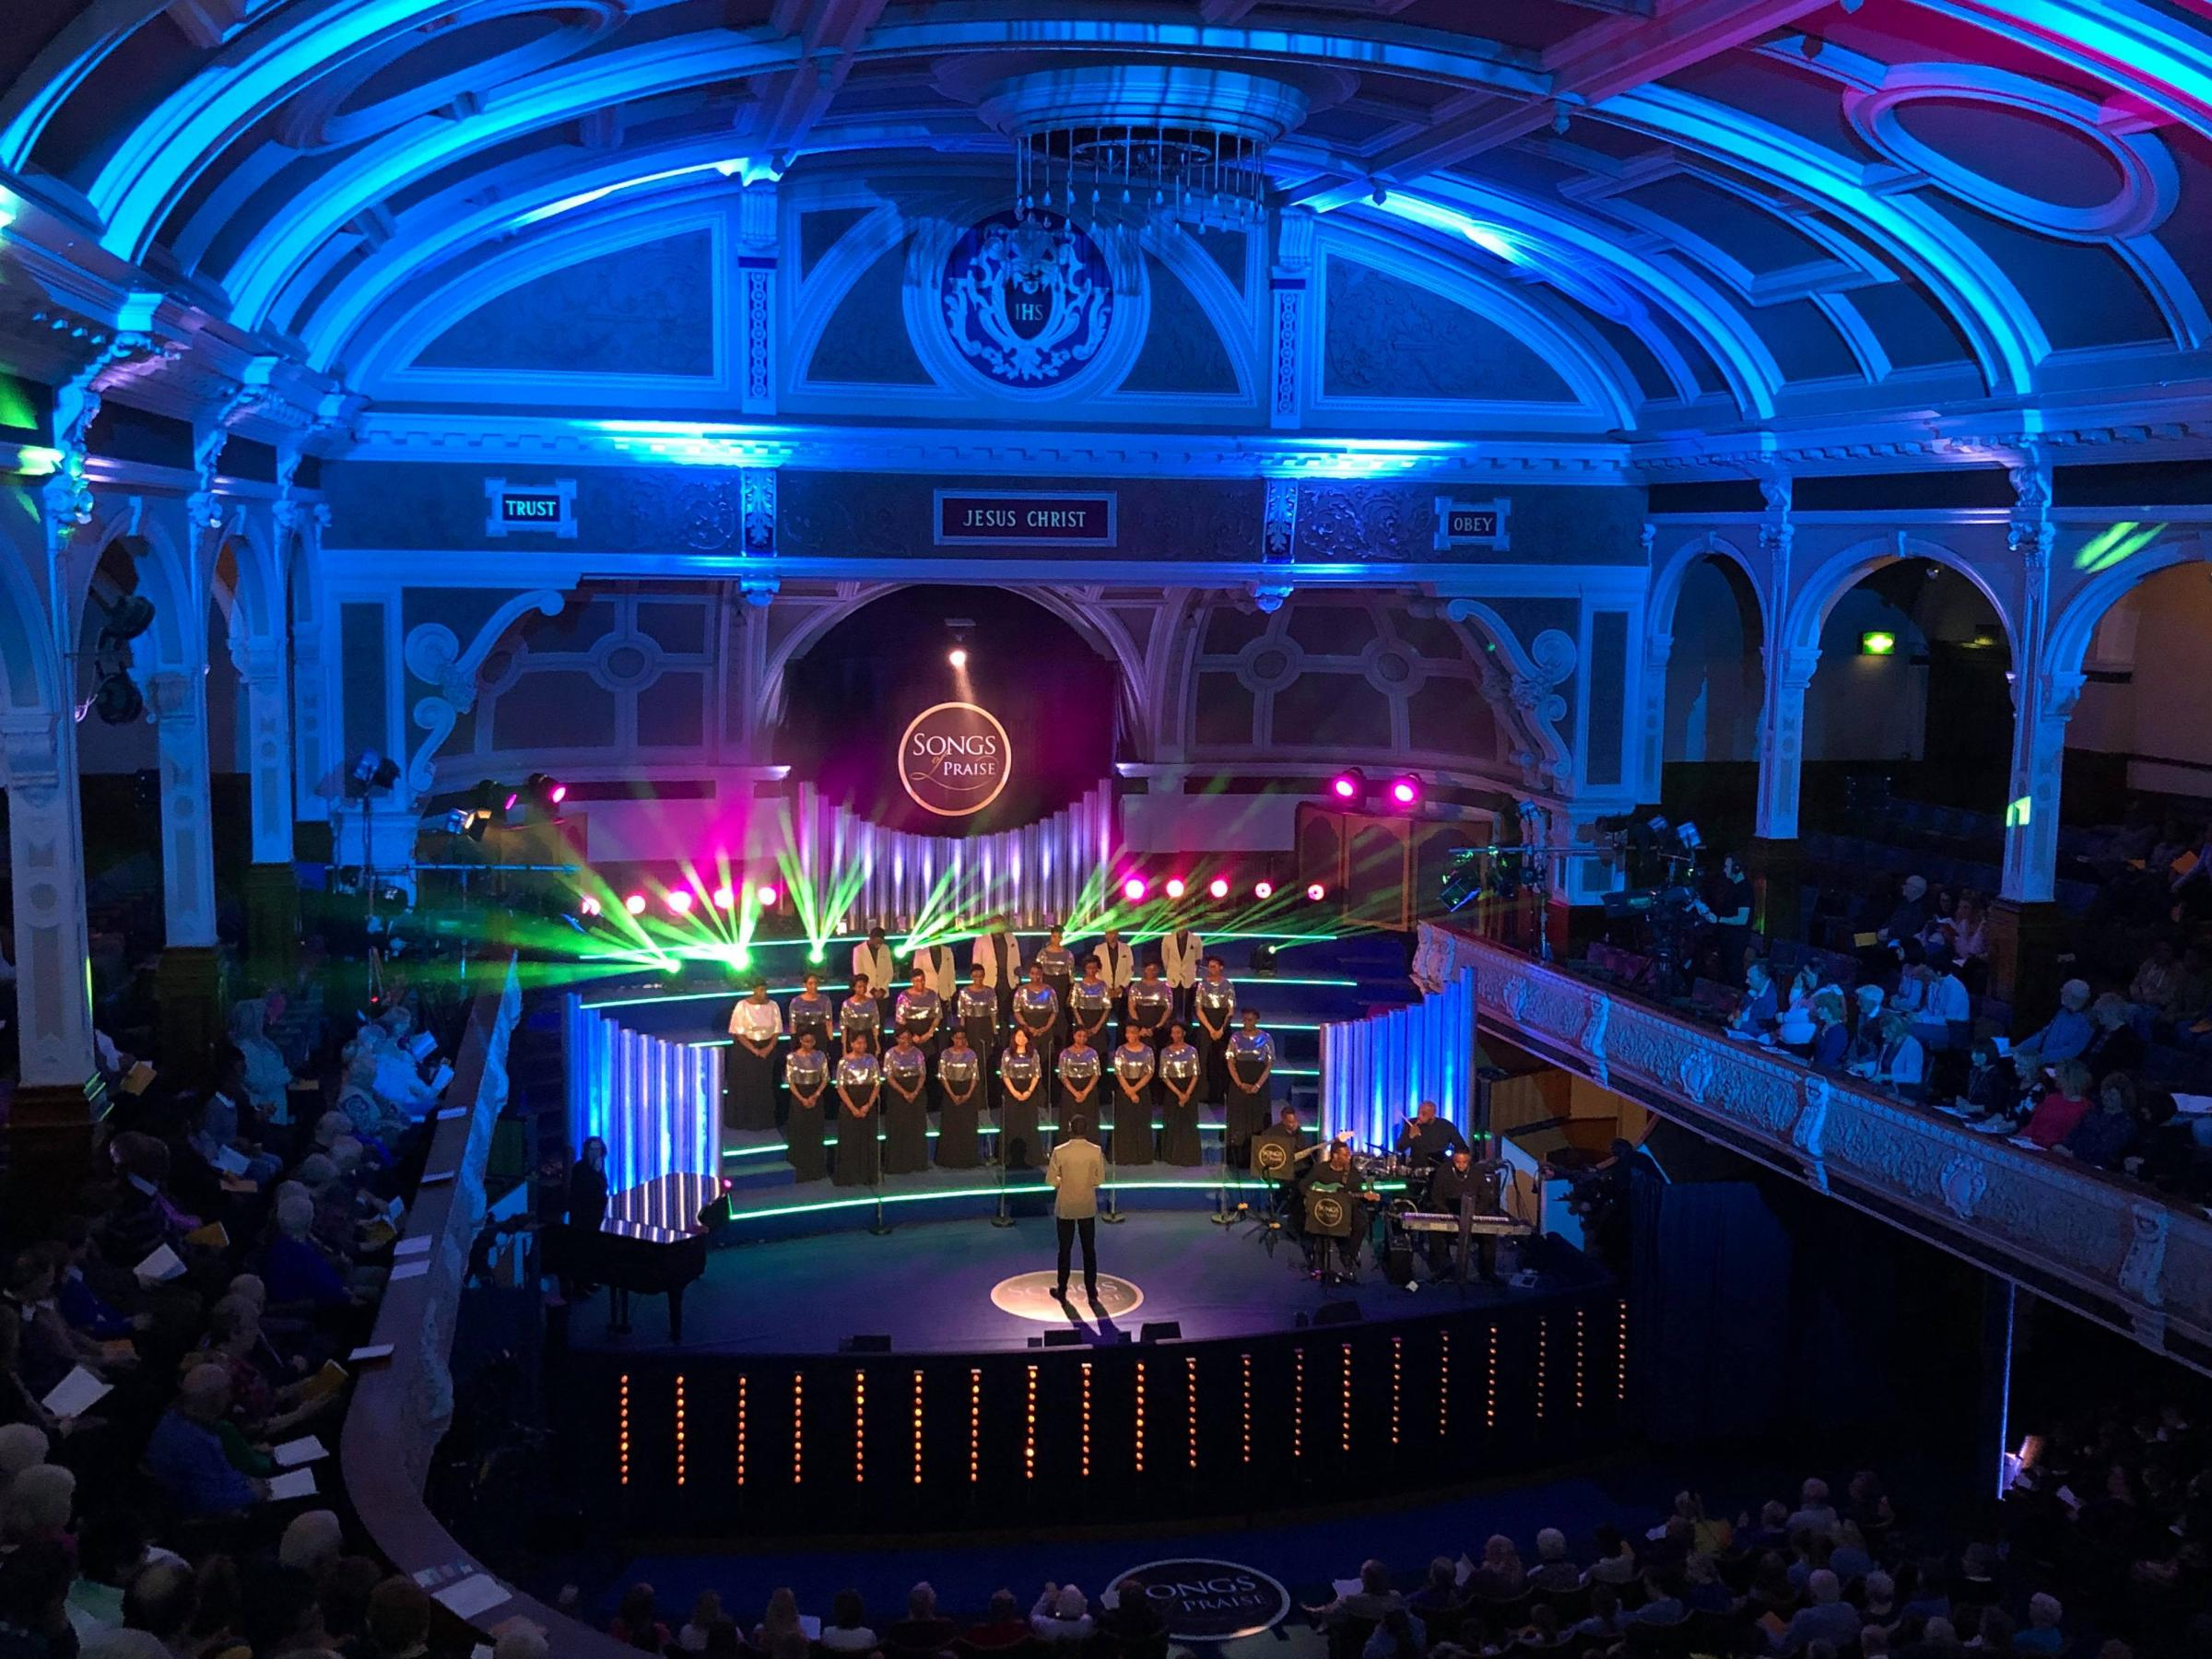 Songs of Praise films in Victoria Hall, Bolton